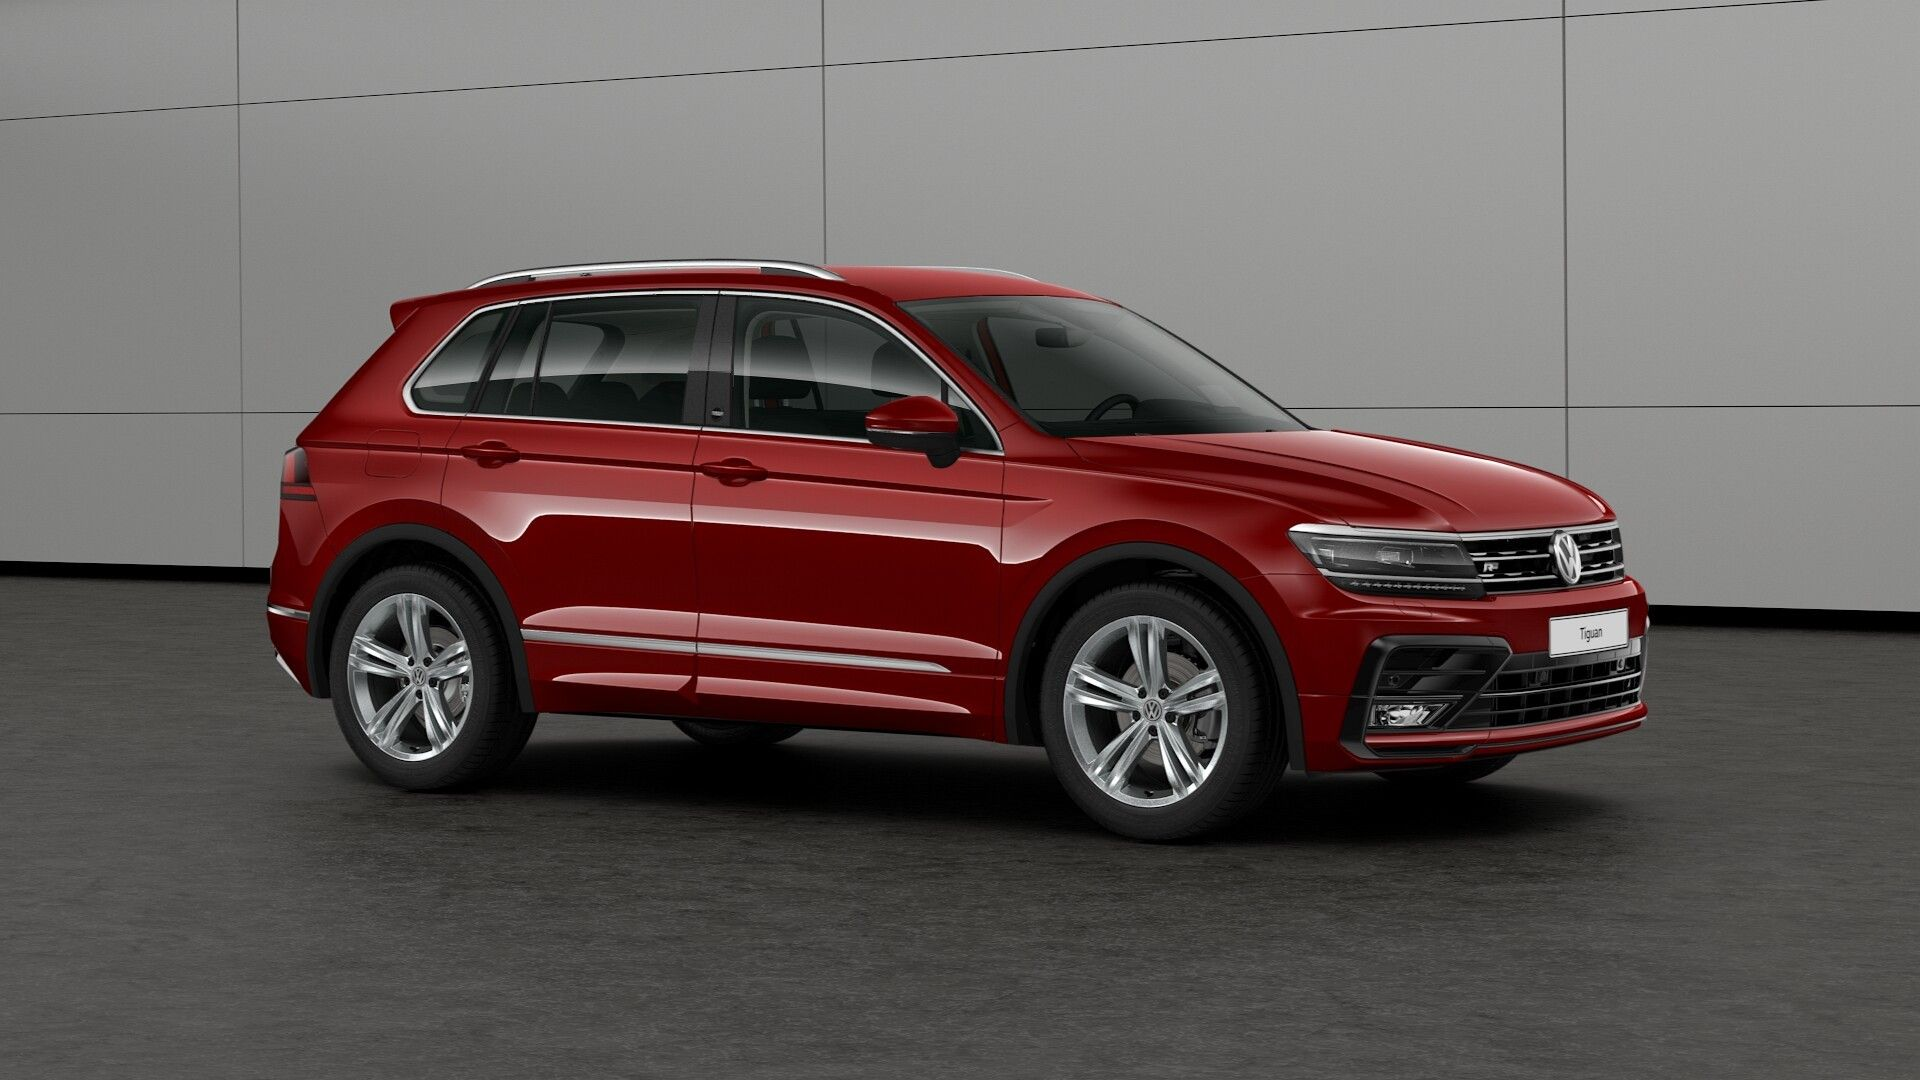 2016 Jetta Gli >> Ruby Red Metallic | VW Tiguan R-Line | Pinterest | Ruby red and Vw